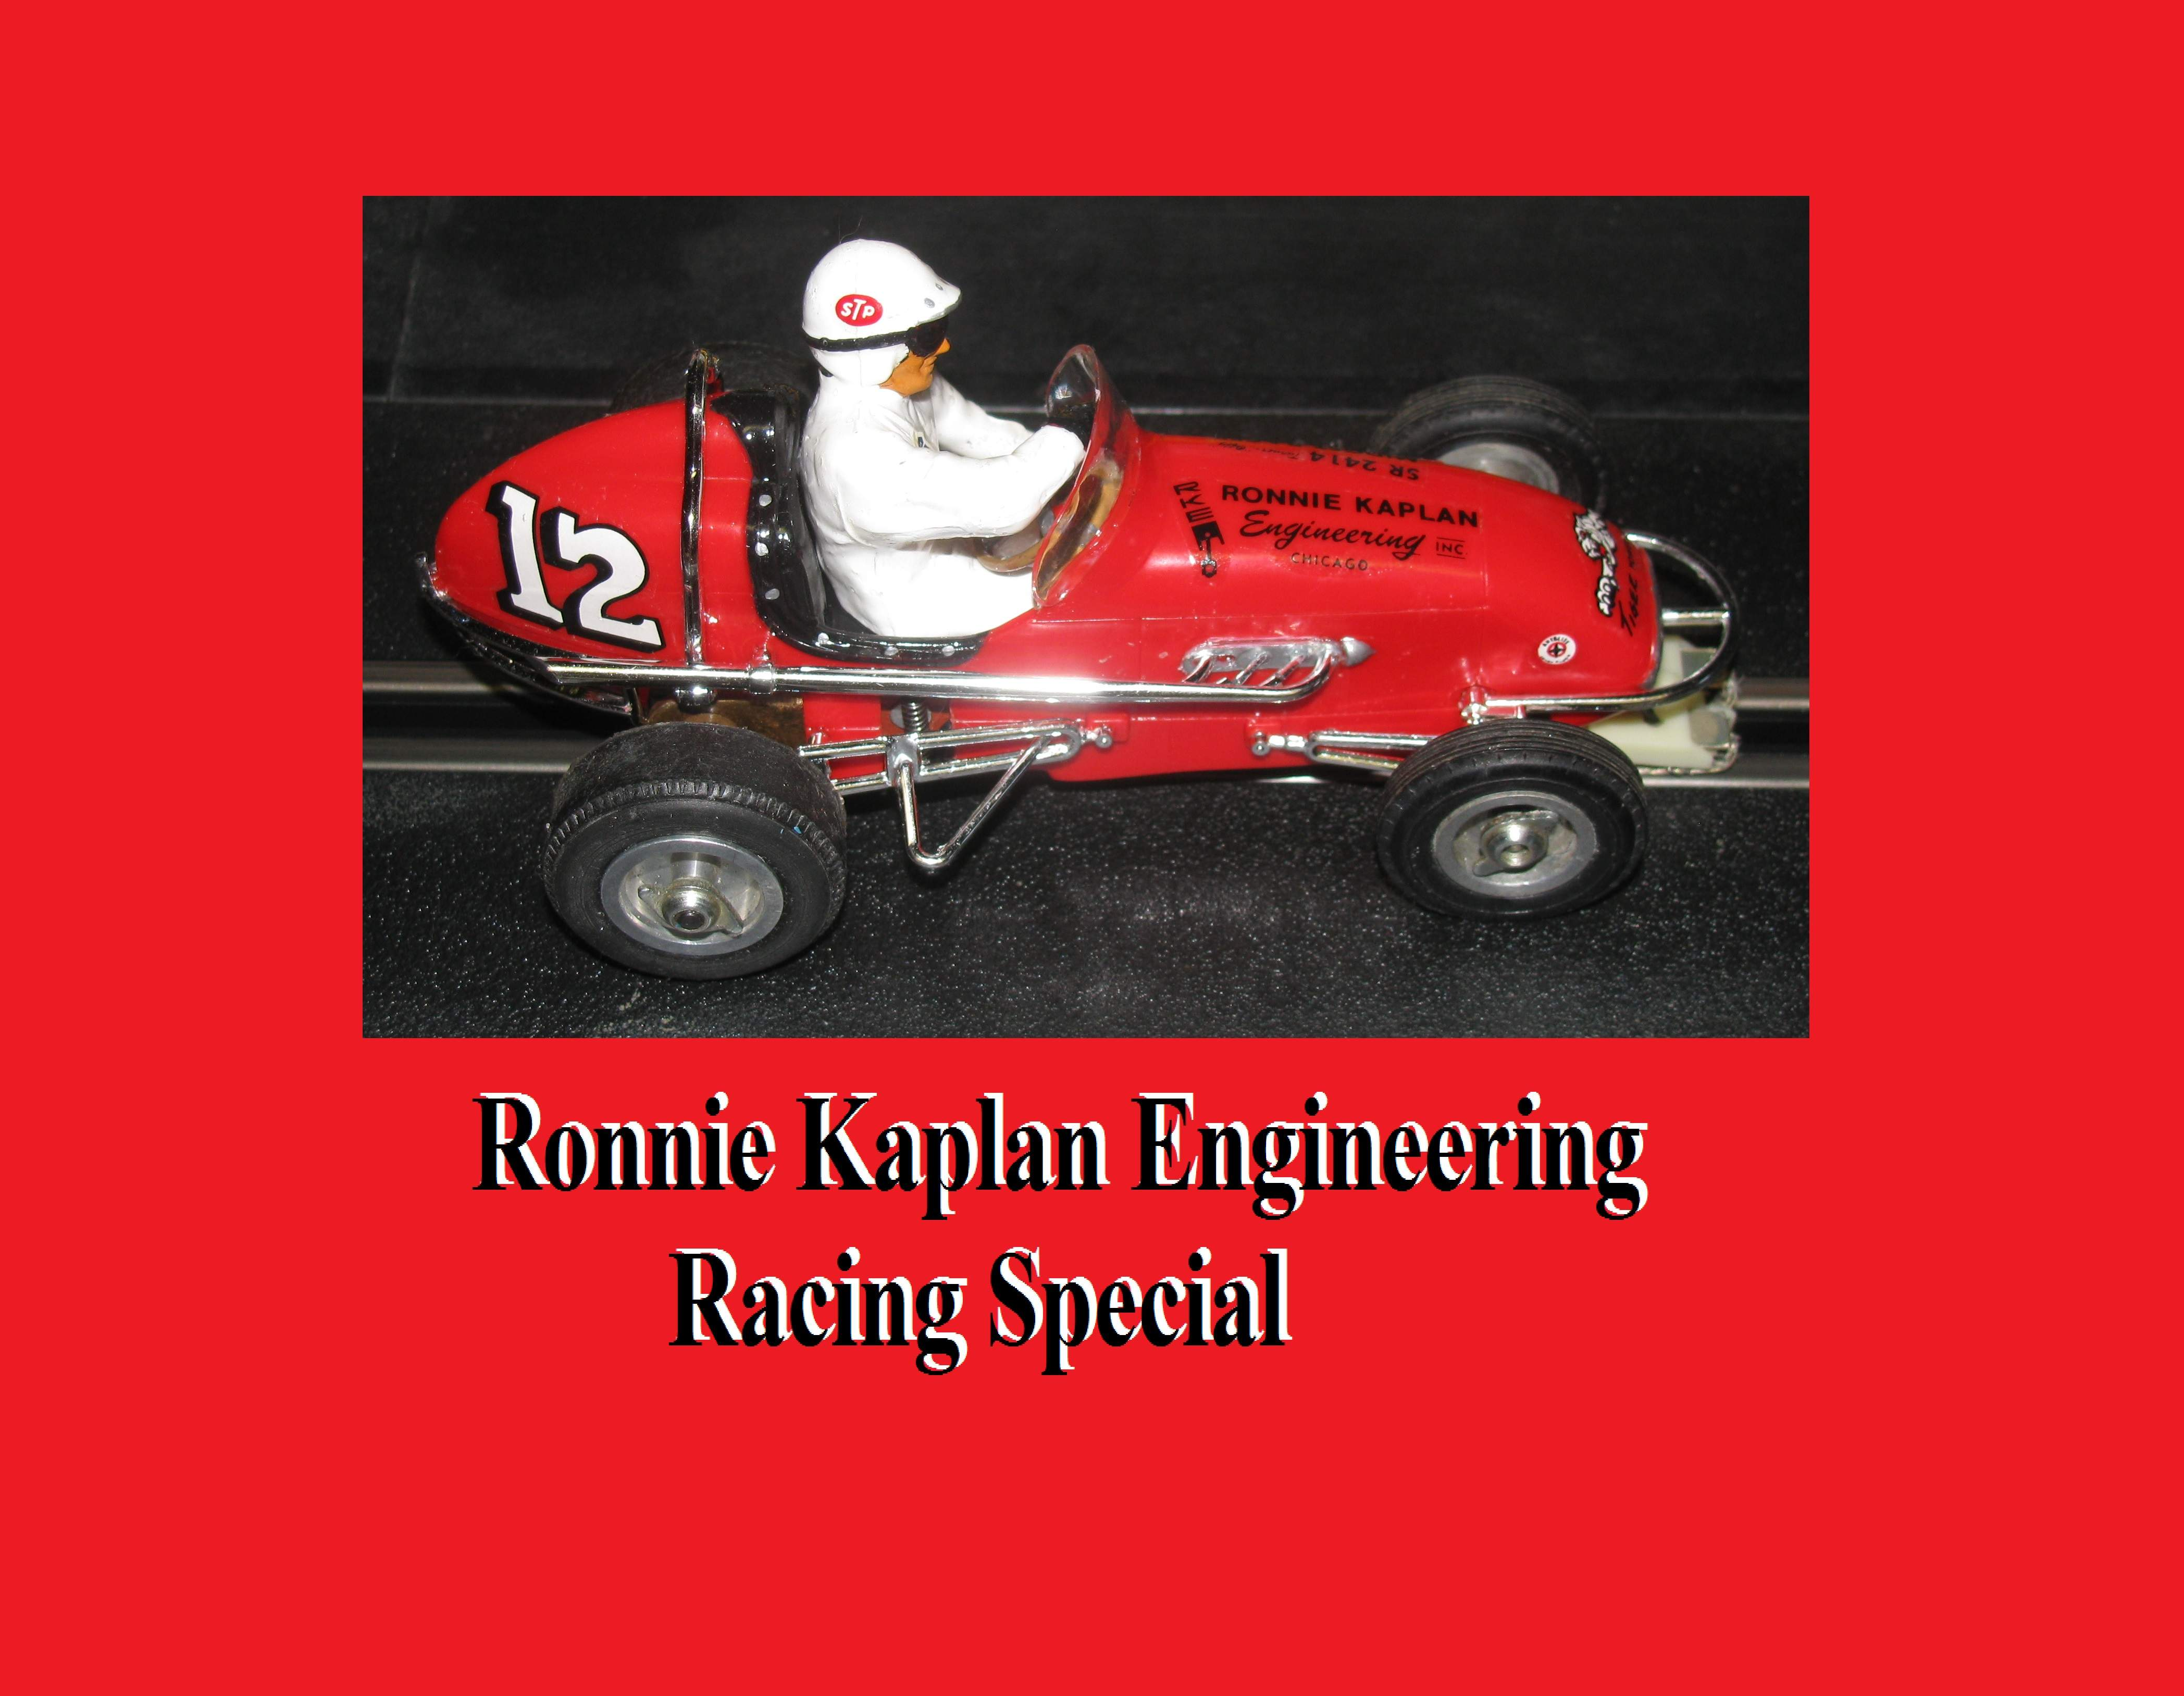 *SOLD* * SALE * Monogram Midget Racer Kaplan Engineering Racing Special Slot Car 1:24 Scale